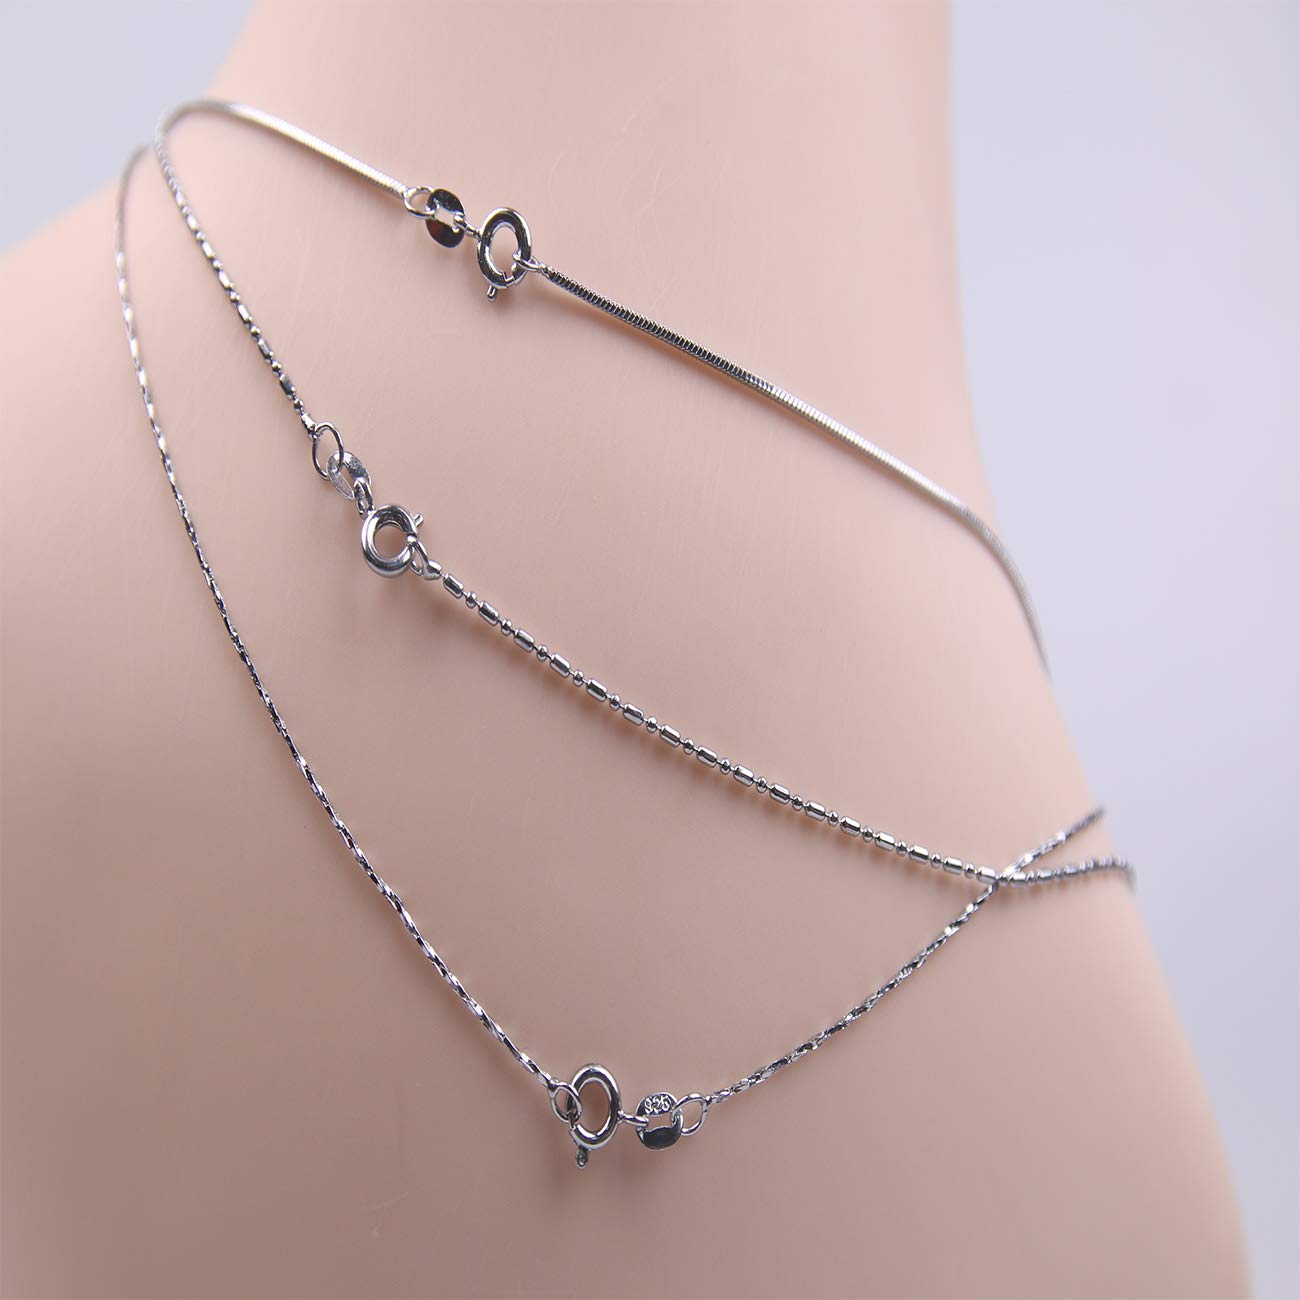 YYJewelry 0.5 MM Silver Rhodium Plated Box Chain Necklace Cable Chain Snake Chain Necklace for Women Girls,3 Pieces //17-18